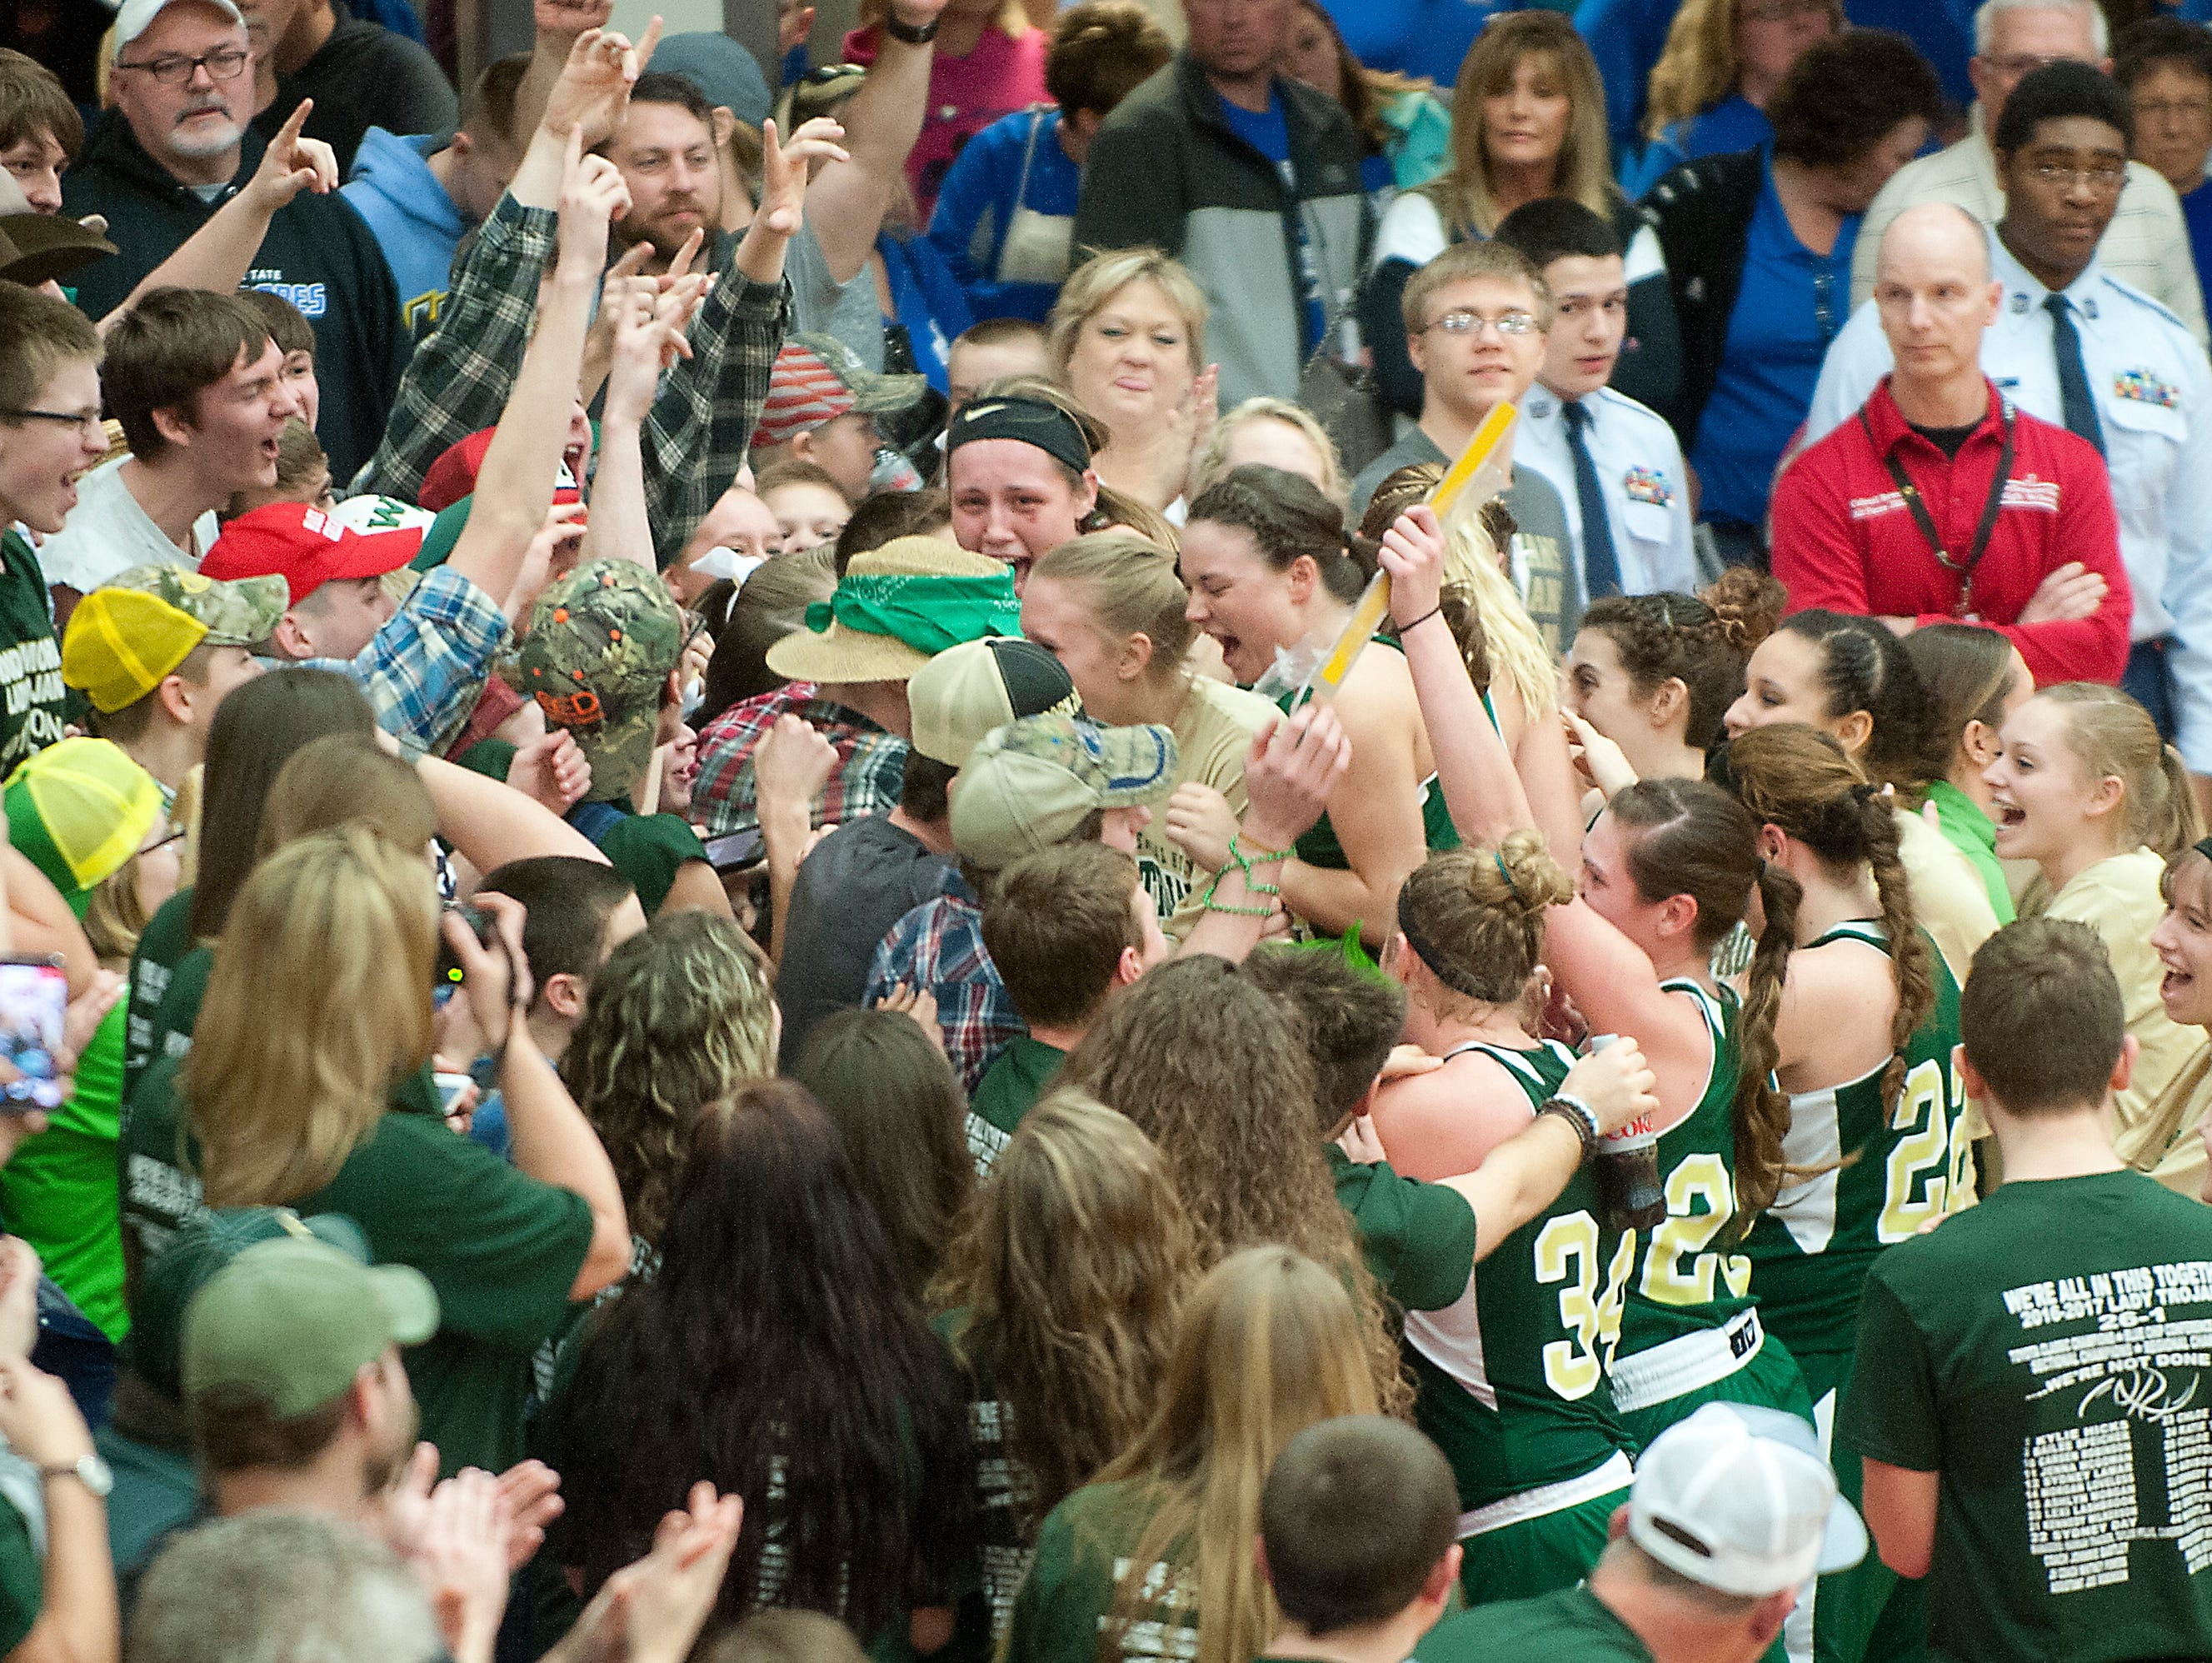 Wood Memorial players are mobbed by their fans after beating Tindley 59-50 in the IHSAA girls' class 1A semi-state. 17 February 2017